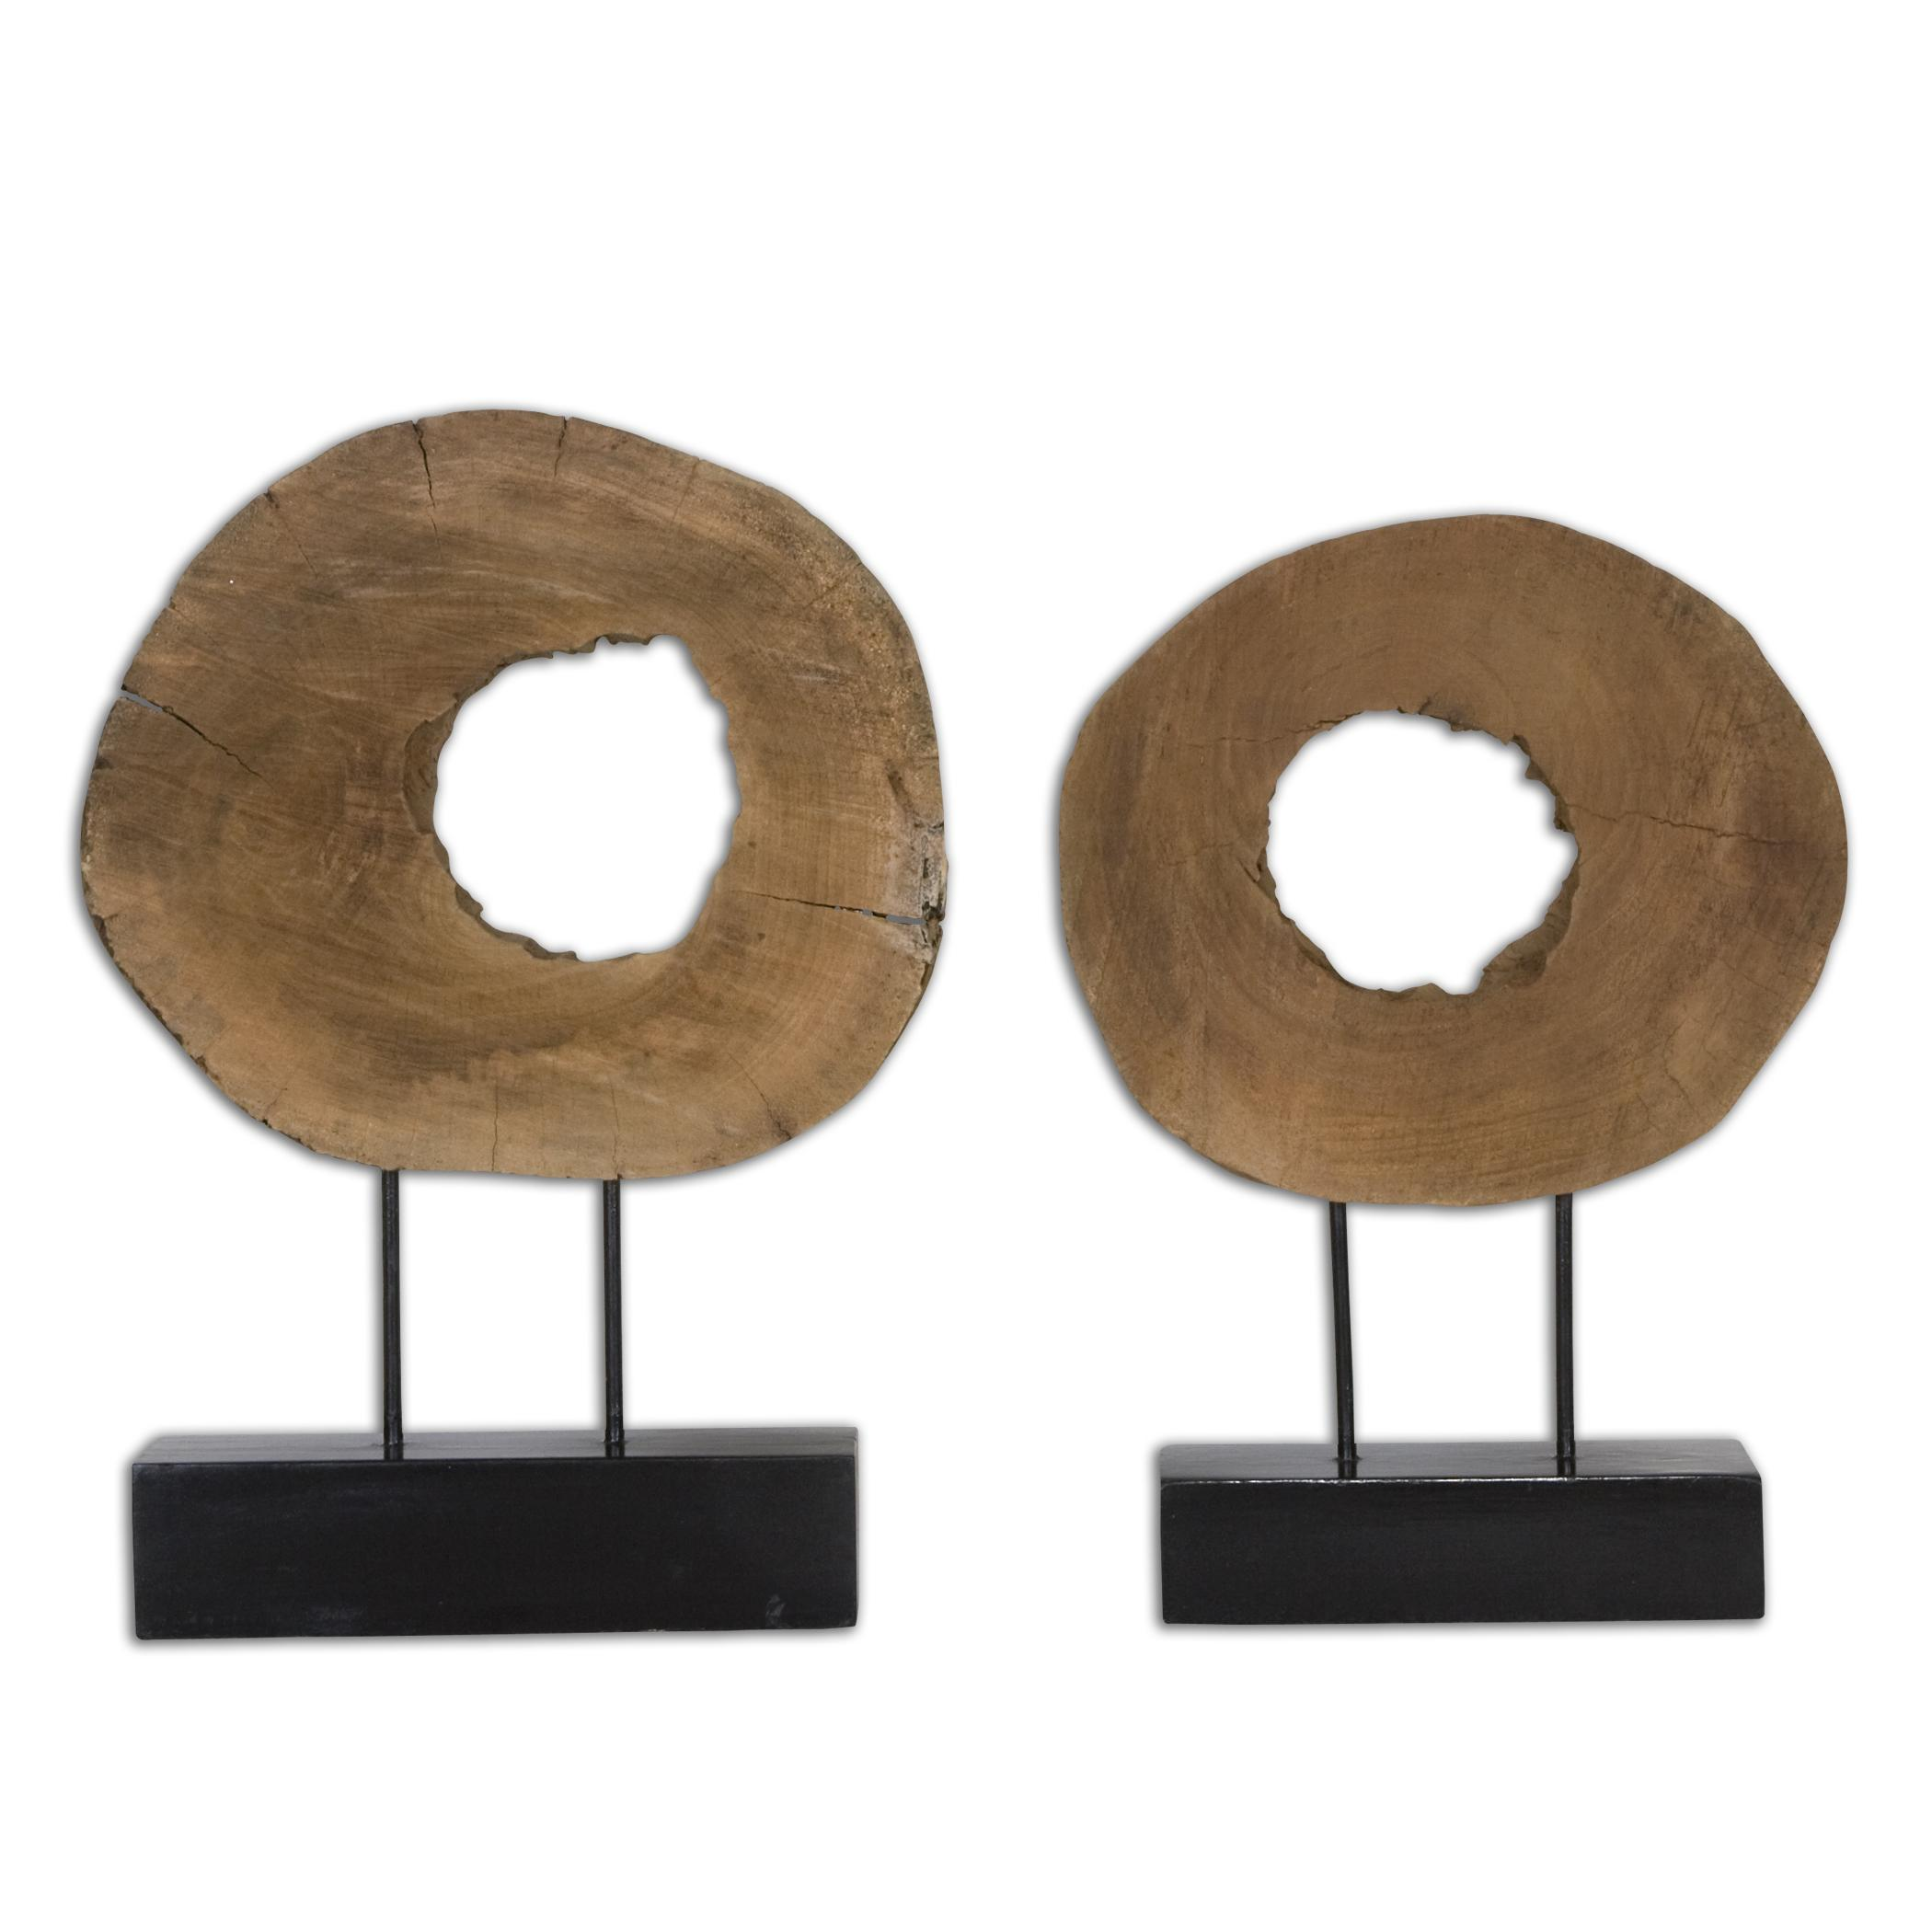 Uttermost Accessories Ashlea Wooden Sculptures Set of 2 - Item Number: 19822